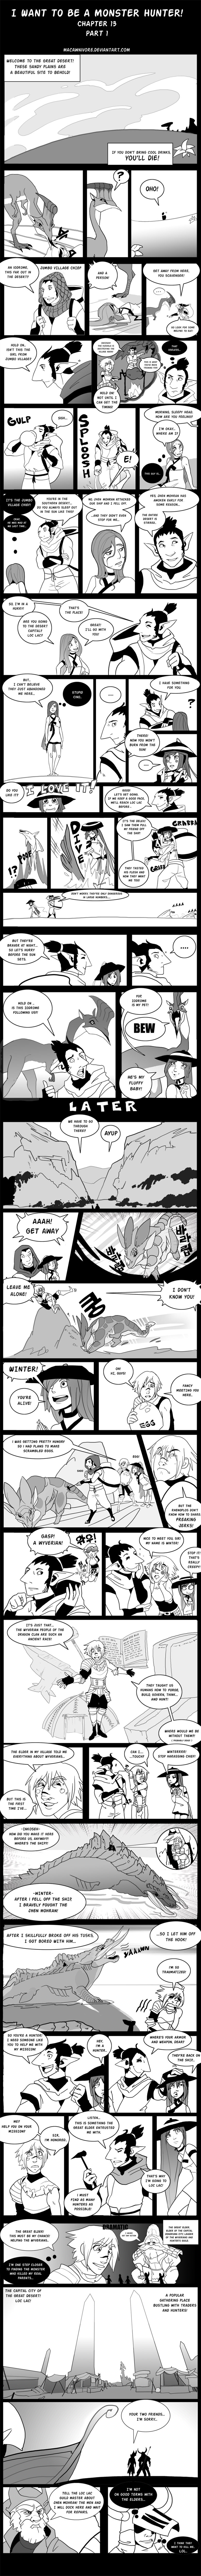 Monster Hunter Comic Chapter 13 - 1 by macawnivore